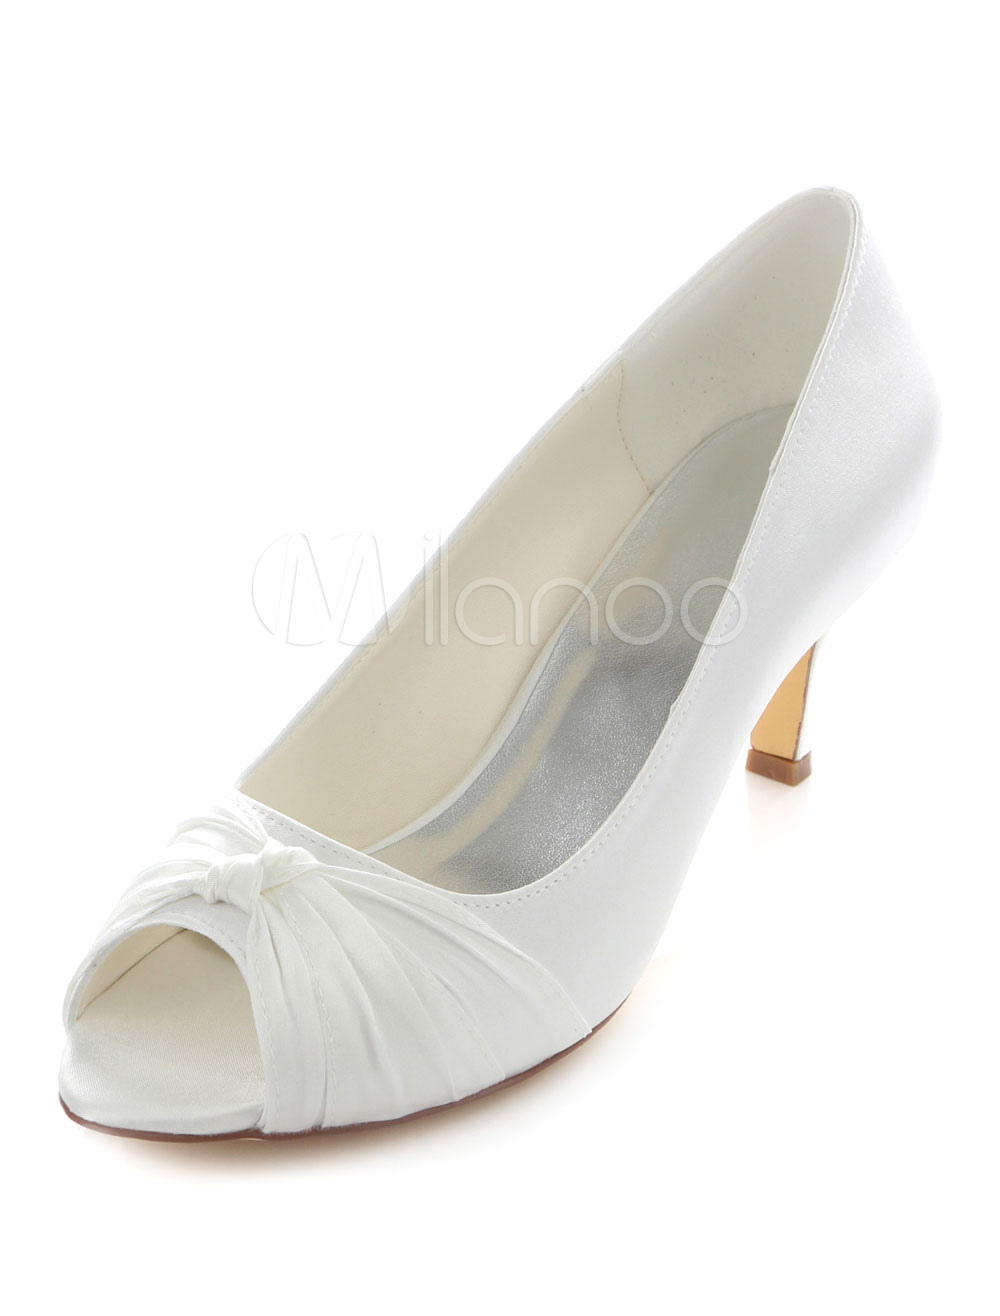 White Bridal Pumps Peep Toe Ruched Satin Wedding Heels for Women